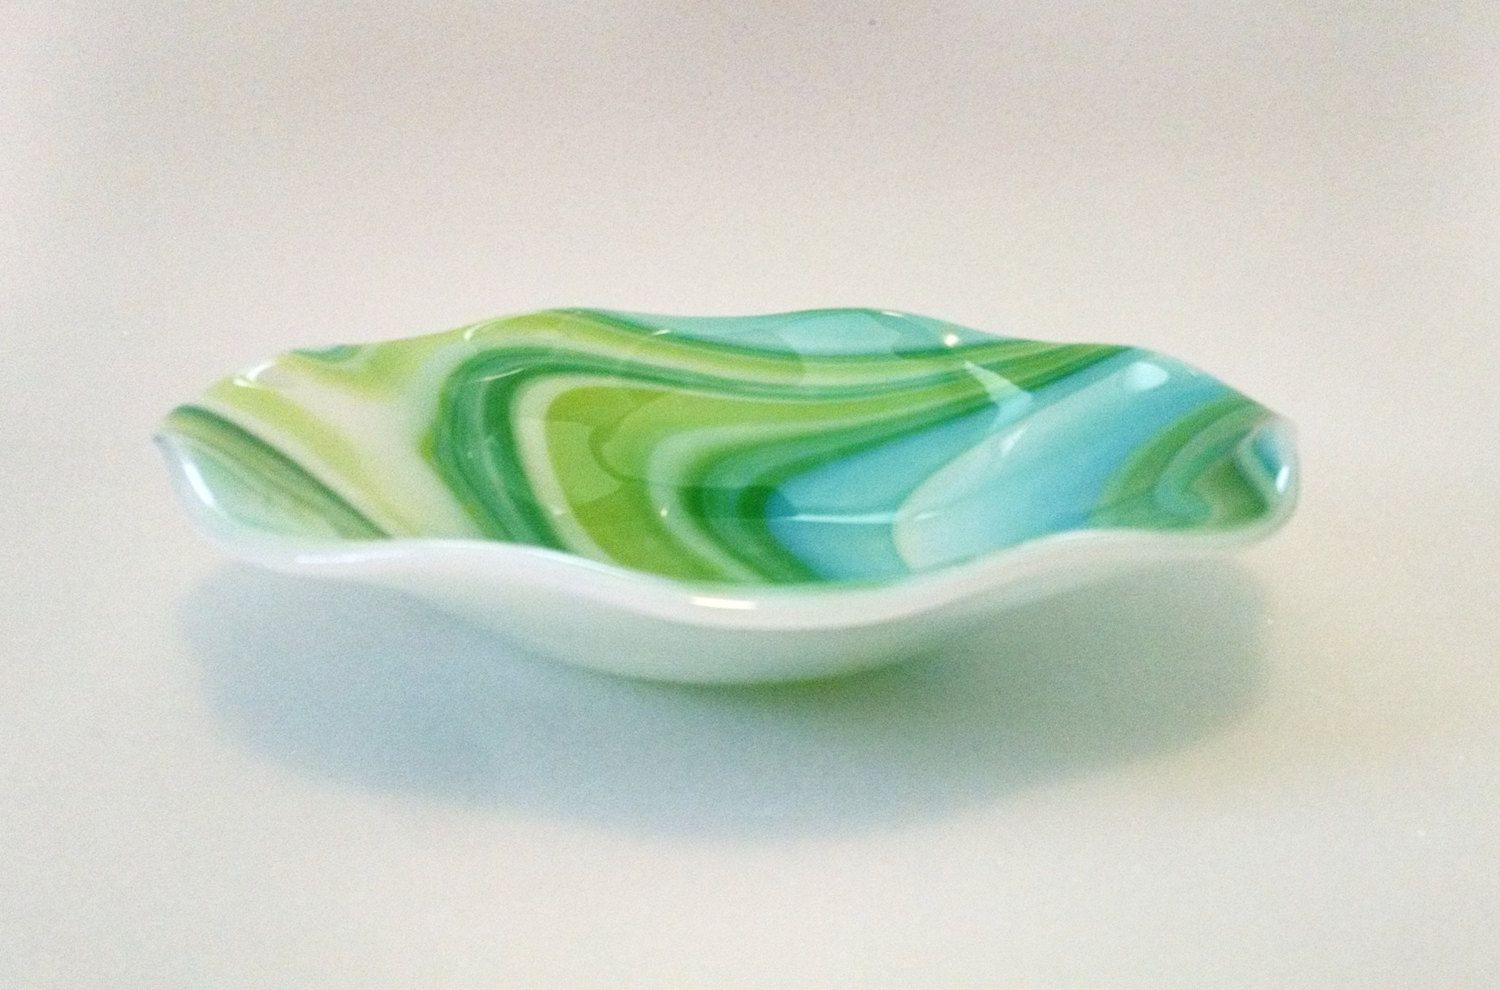 Turquoise Decorative Bowl Fused Glass Bowl  Blue Green Swirl  Fused Glass Dish  Fruit